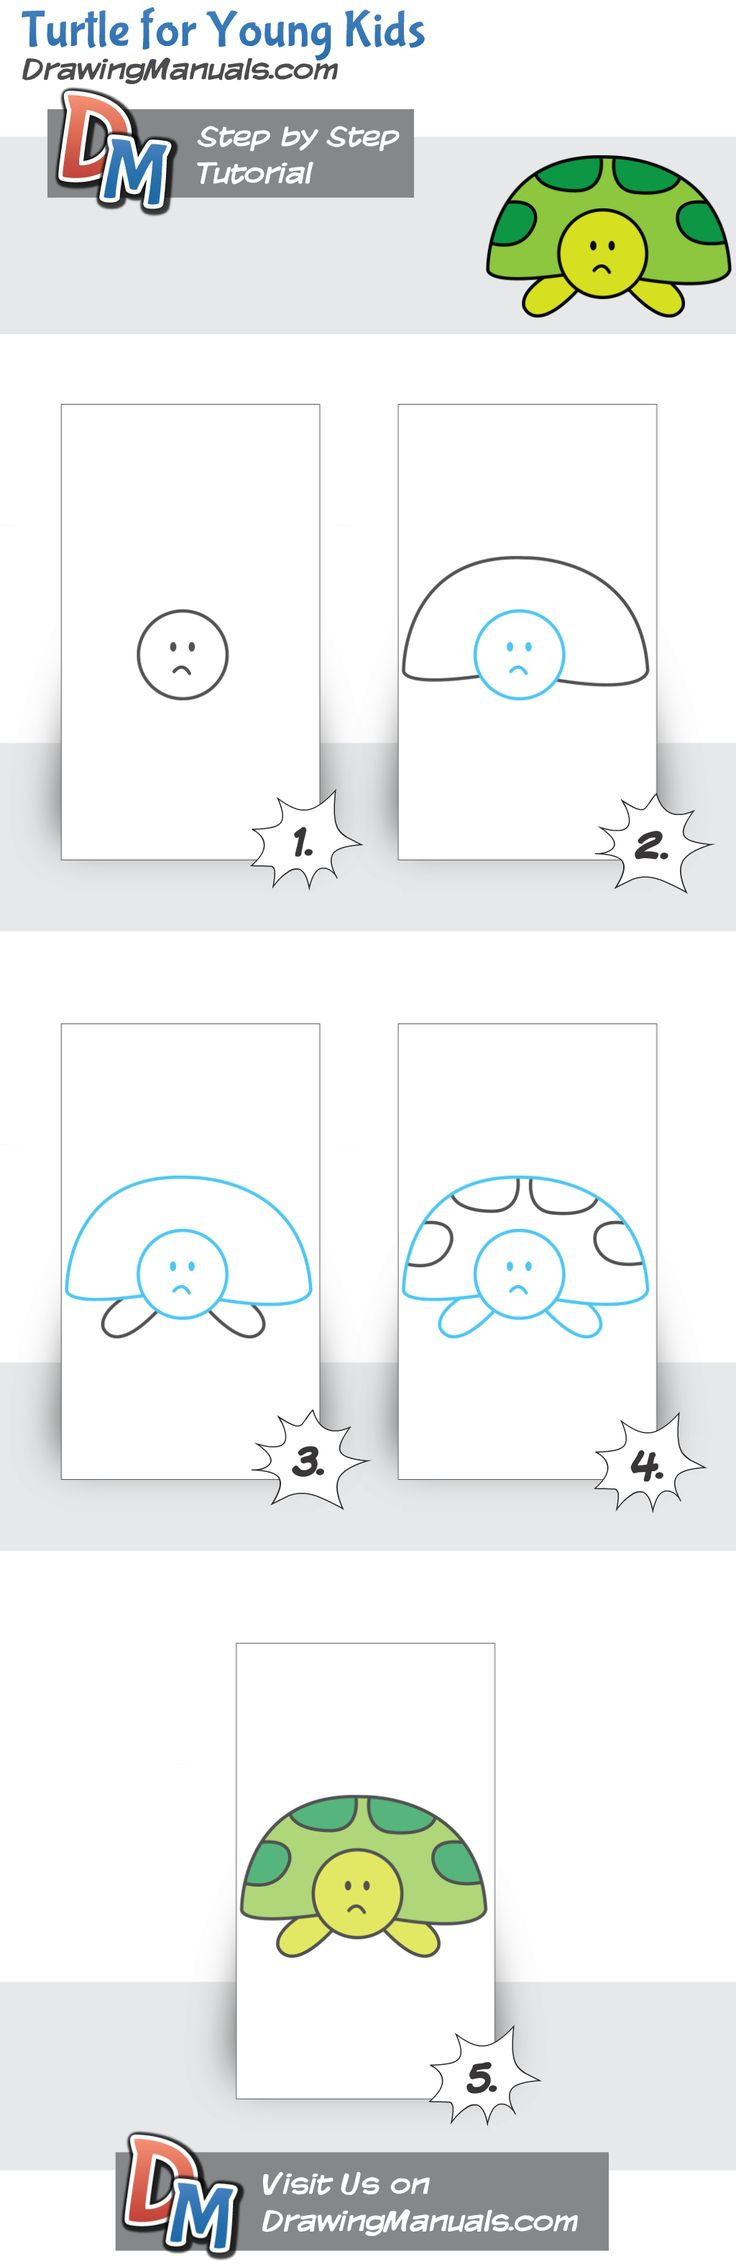 turtle for kids step by step drawing tutorial